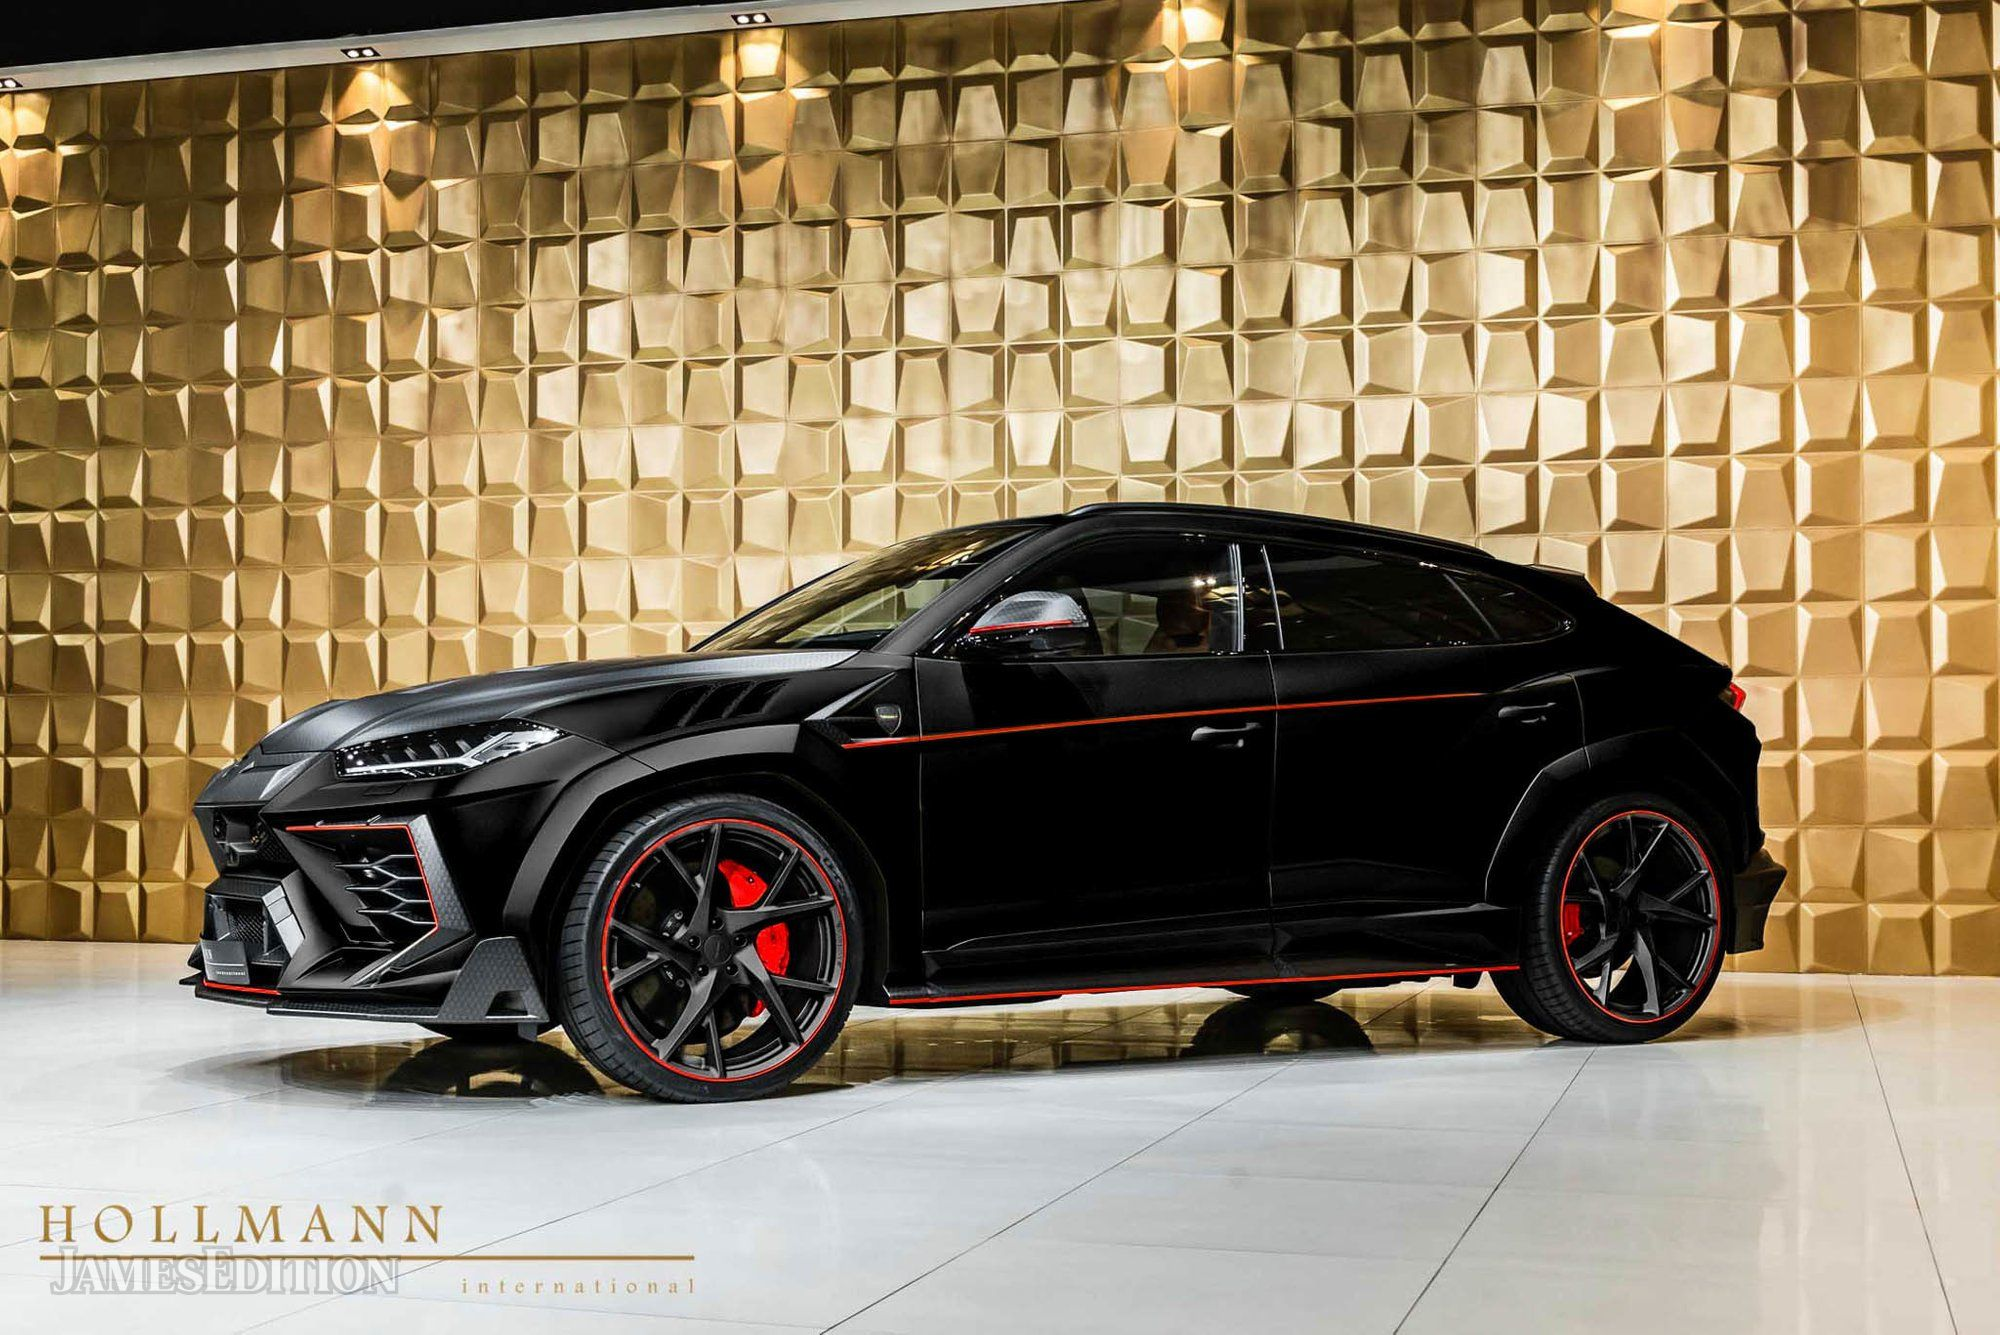 2019 Lamborghini Urus in Stuhr, Germany for sale (10668505)